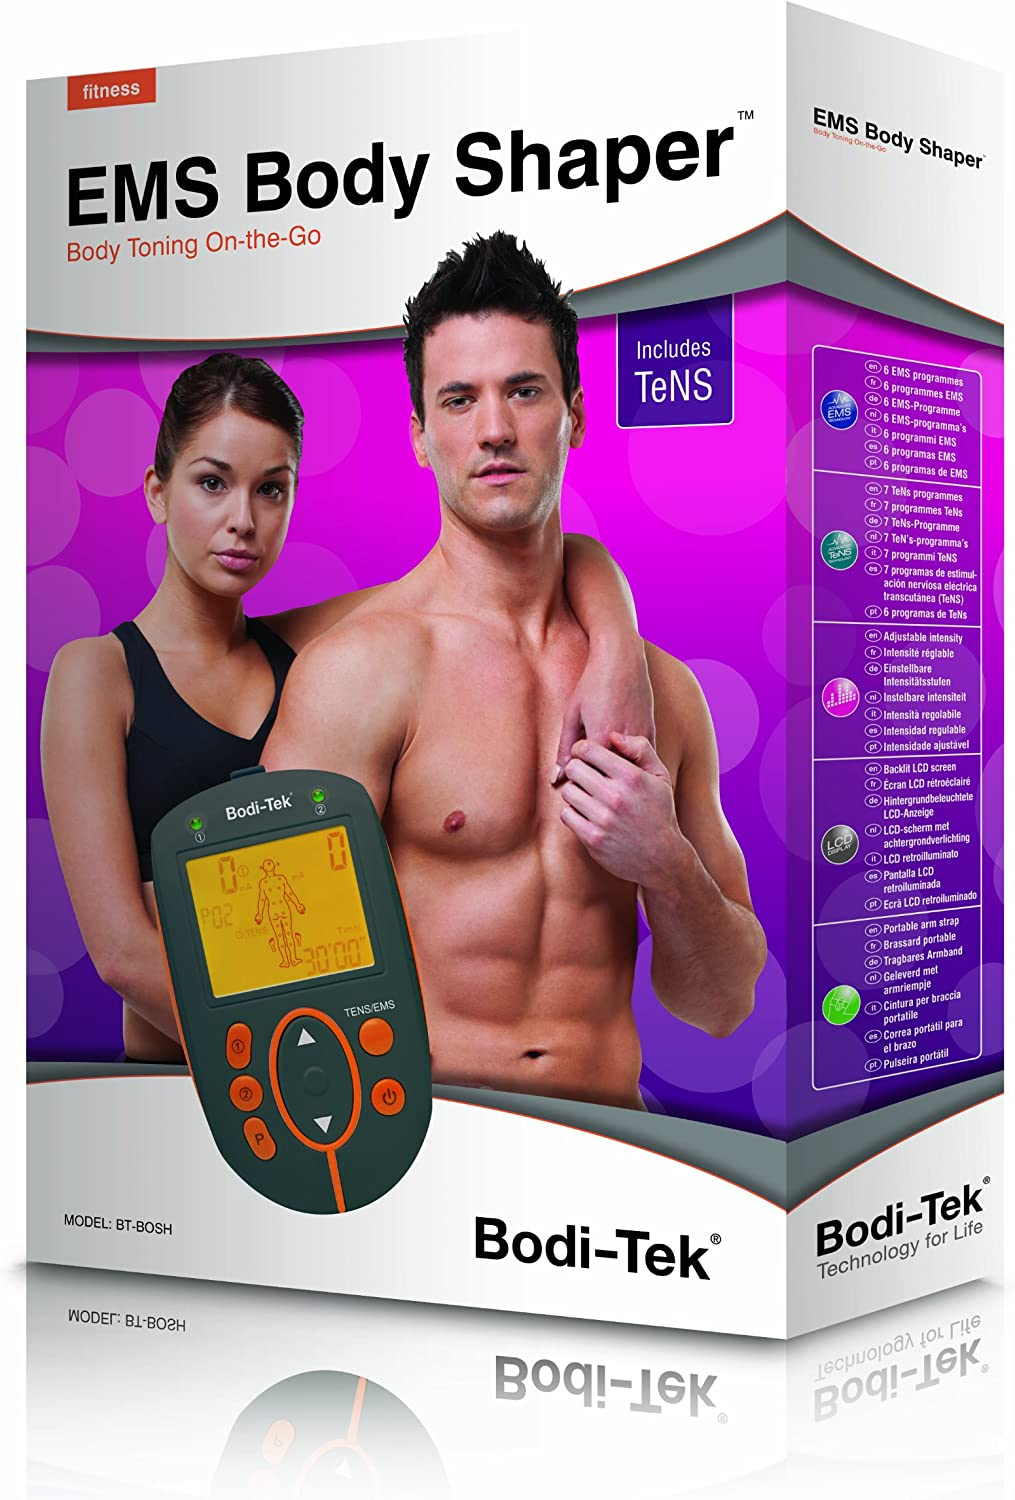 Tabanlly Electric ABS Smart Hips Trainer,EMS Stimulator Toner Body Sculpting Massager for Sports Lose Weight